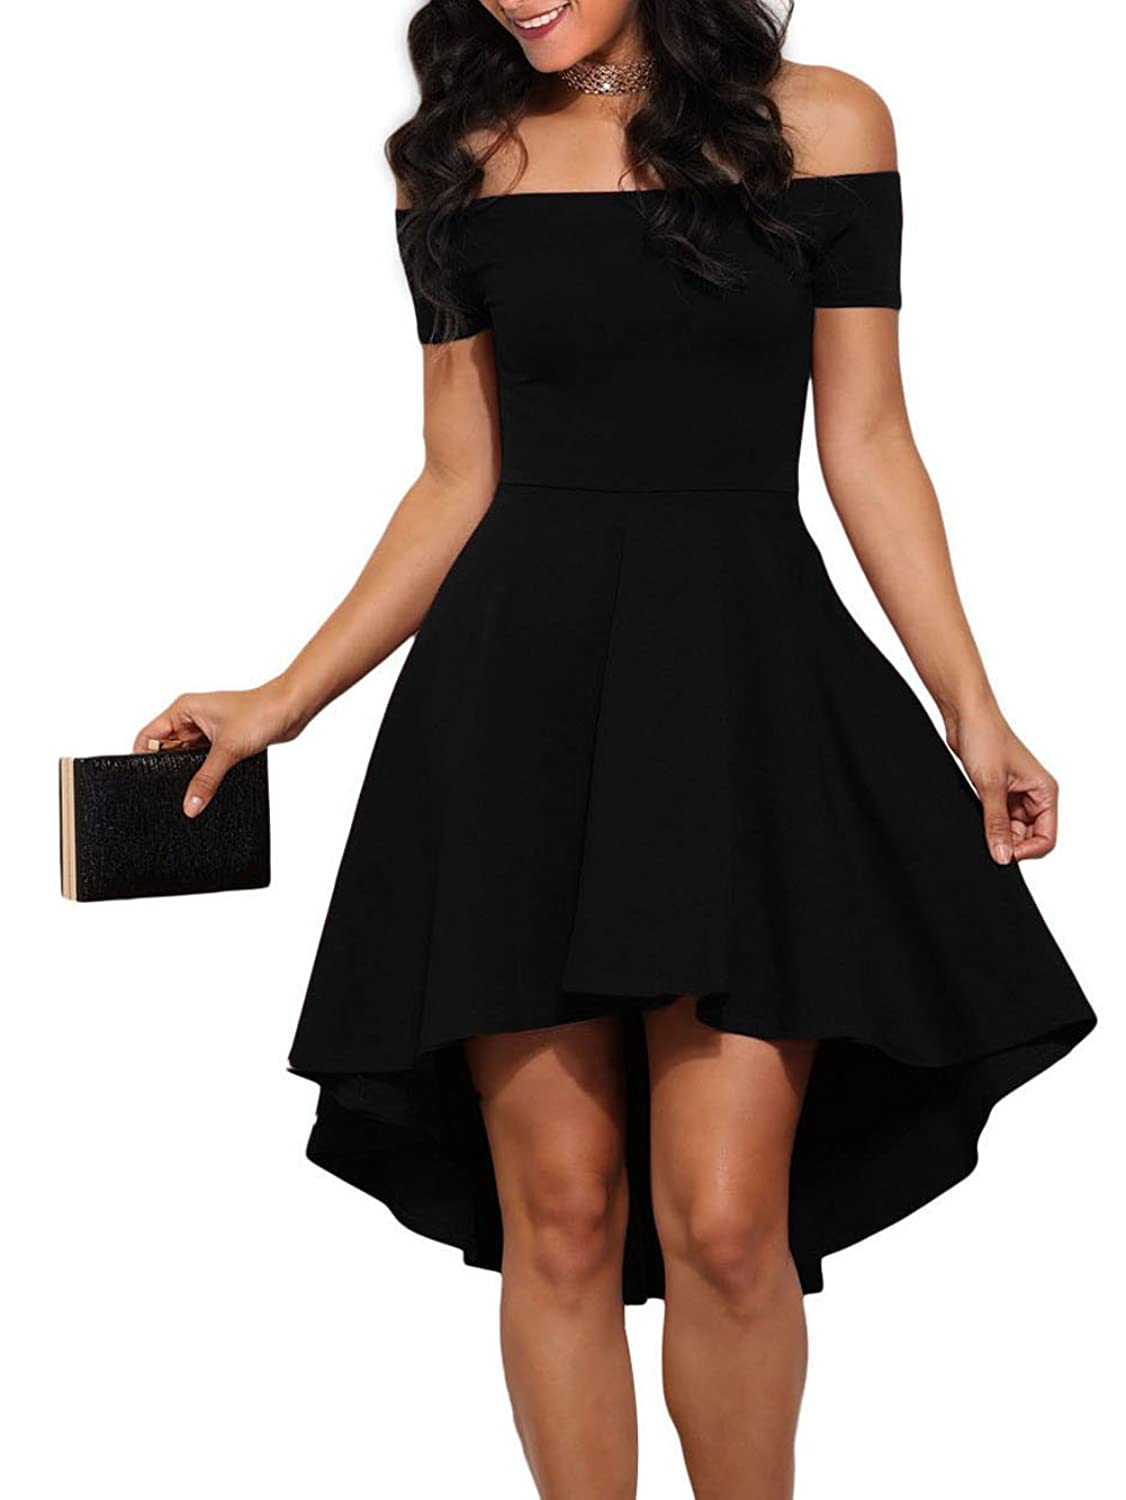 Dress for Women, Evening Cocktail Party On Sale, Black, polyester, 2017, 10 12 14 8 D.exterior